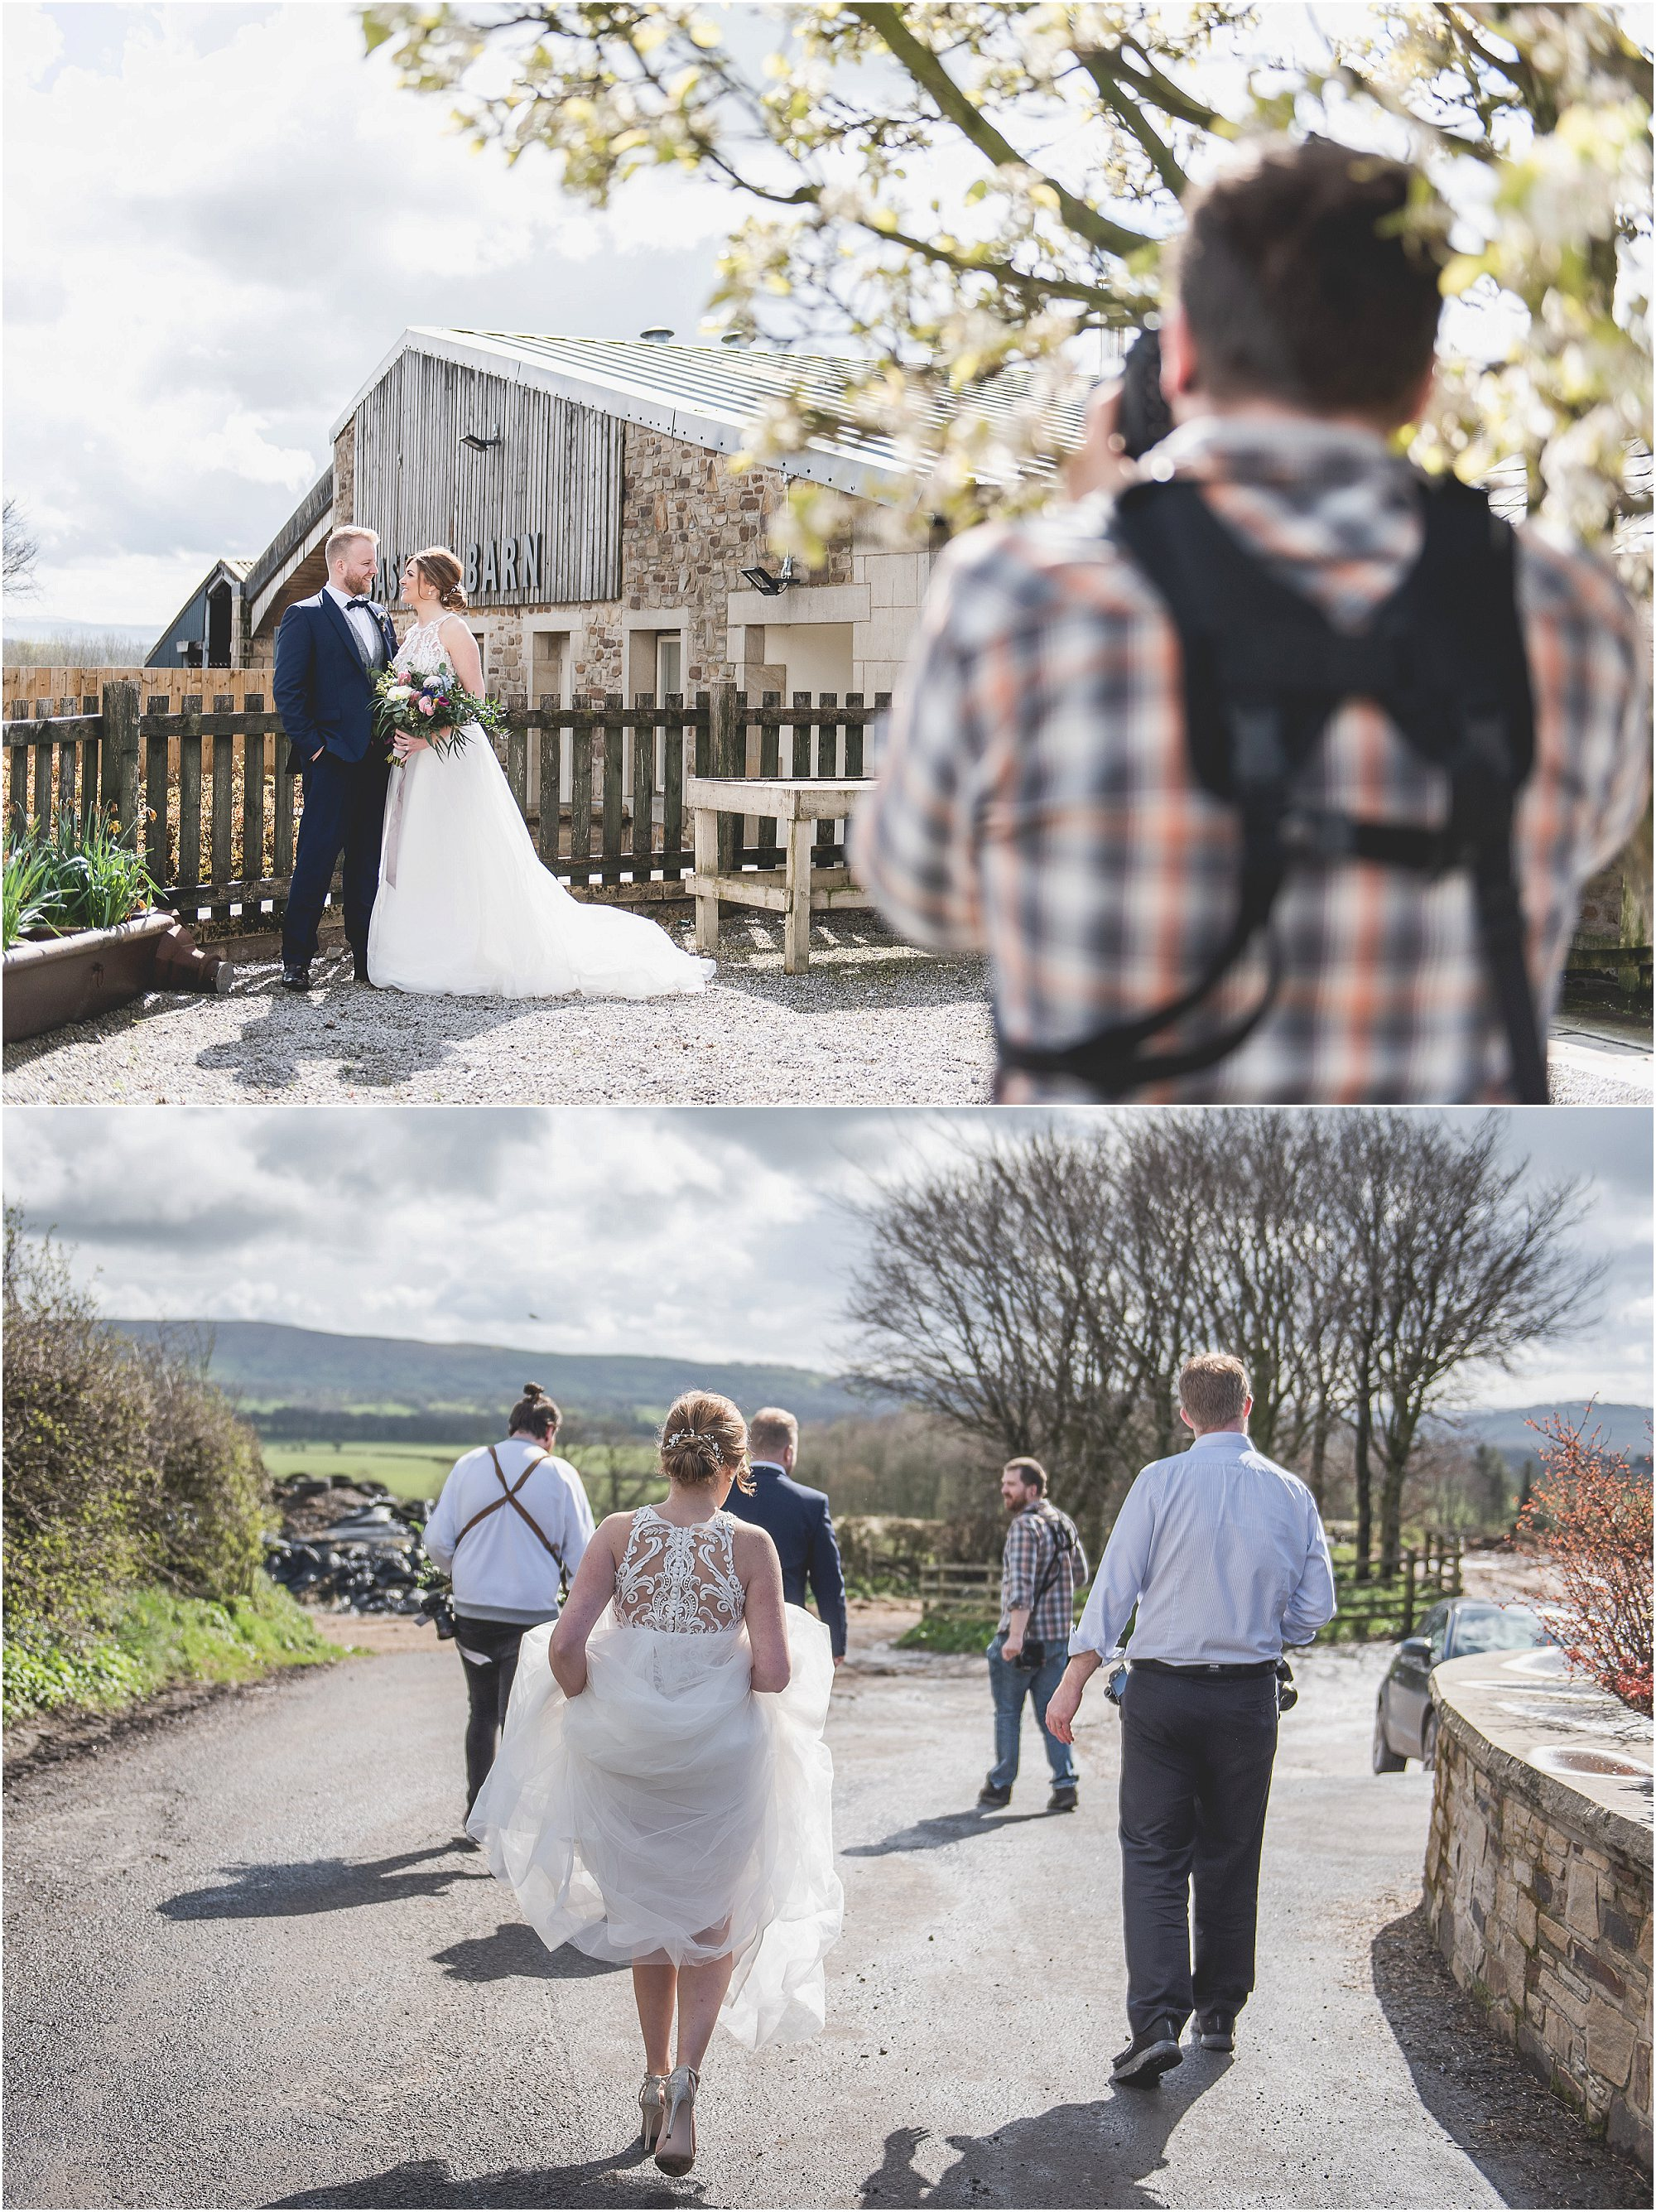 The truth behind Wedding Photography